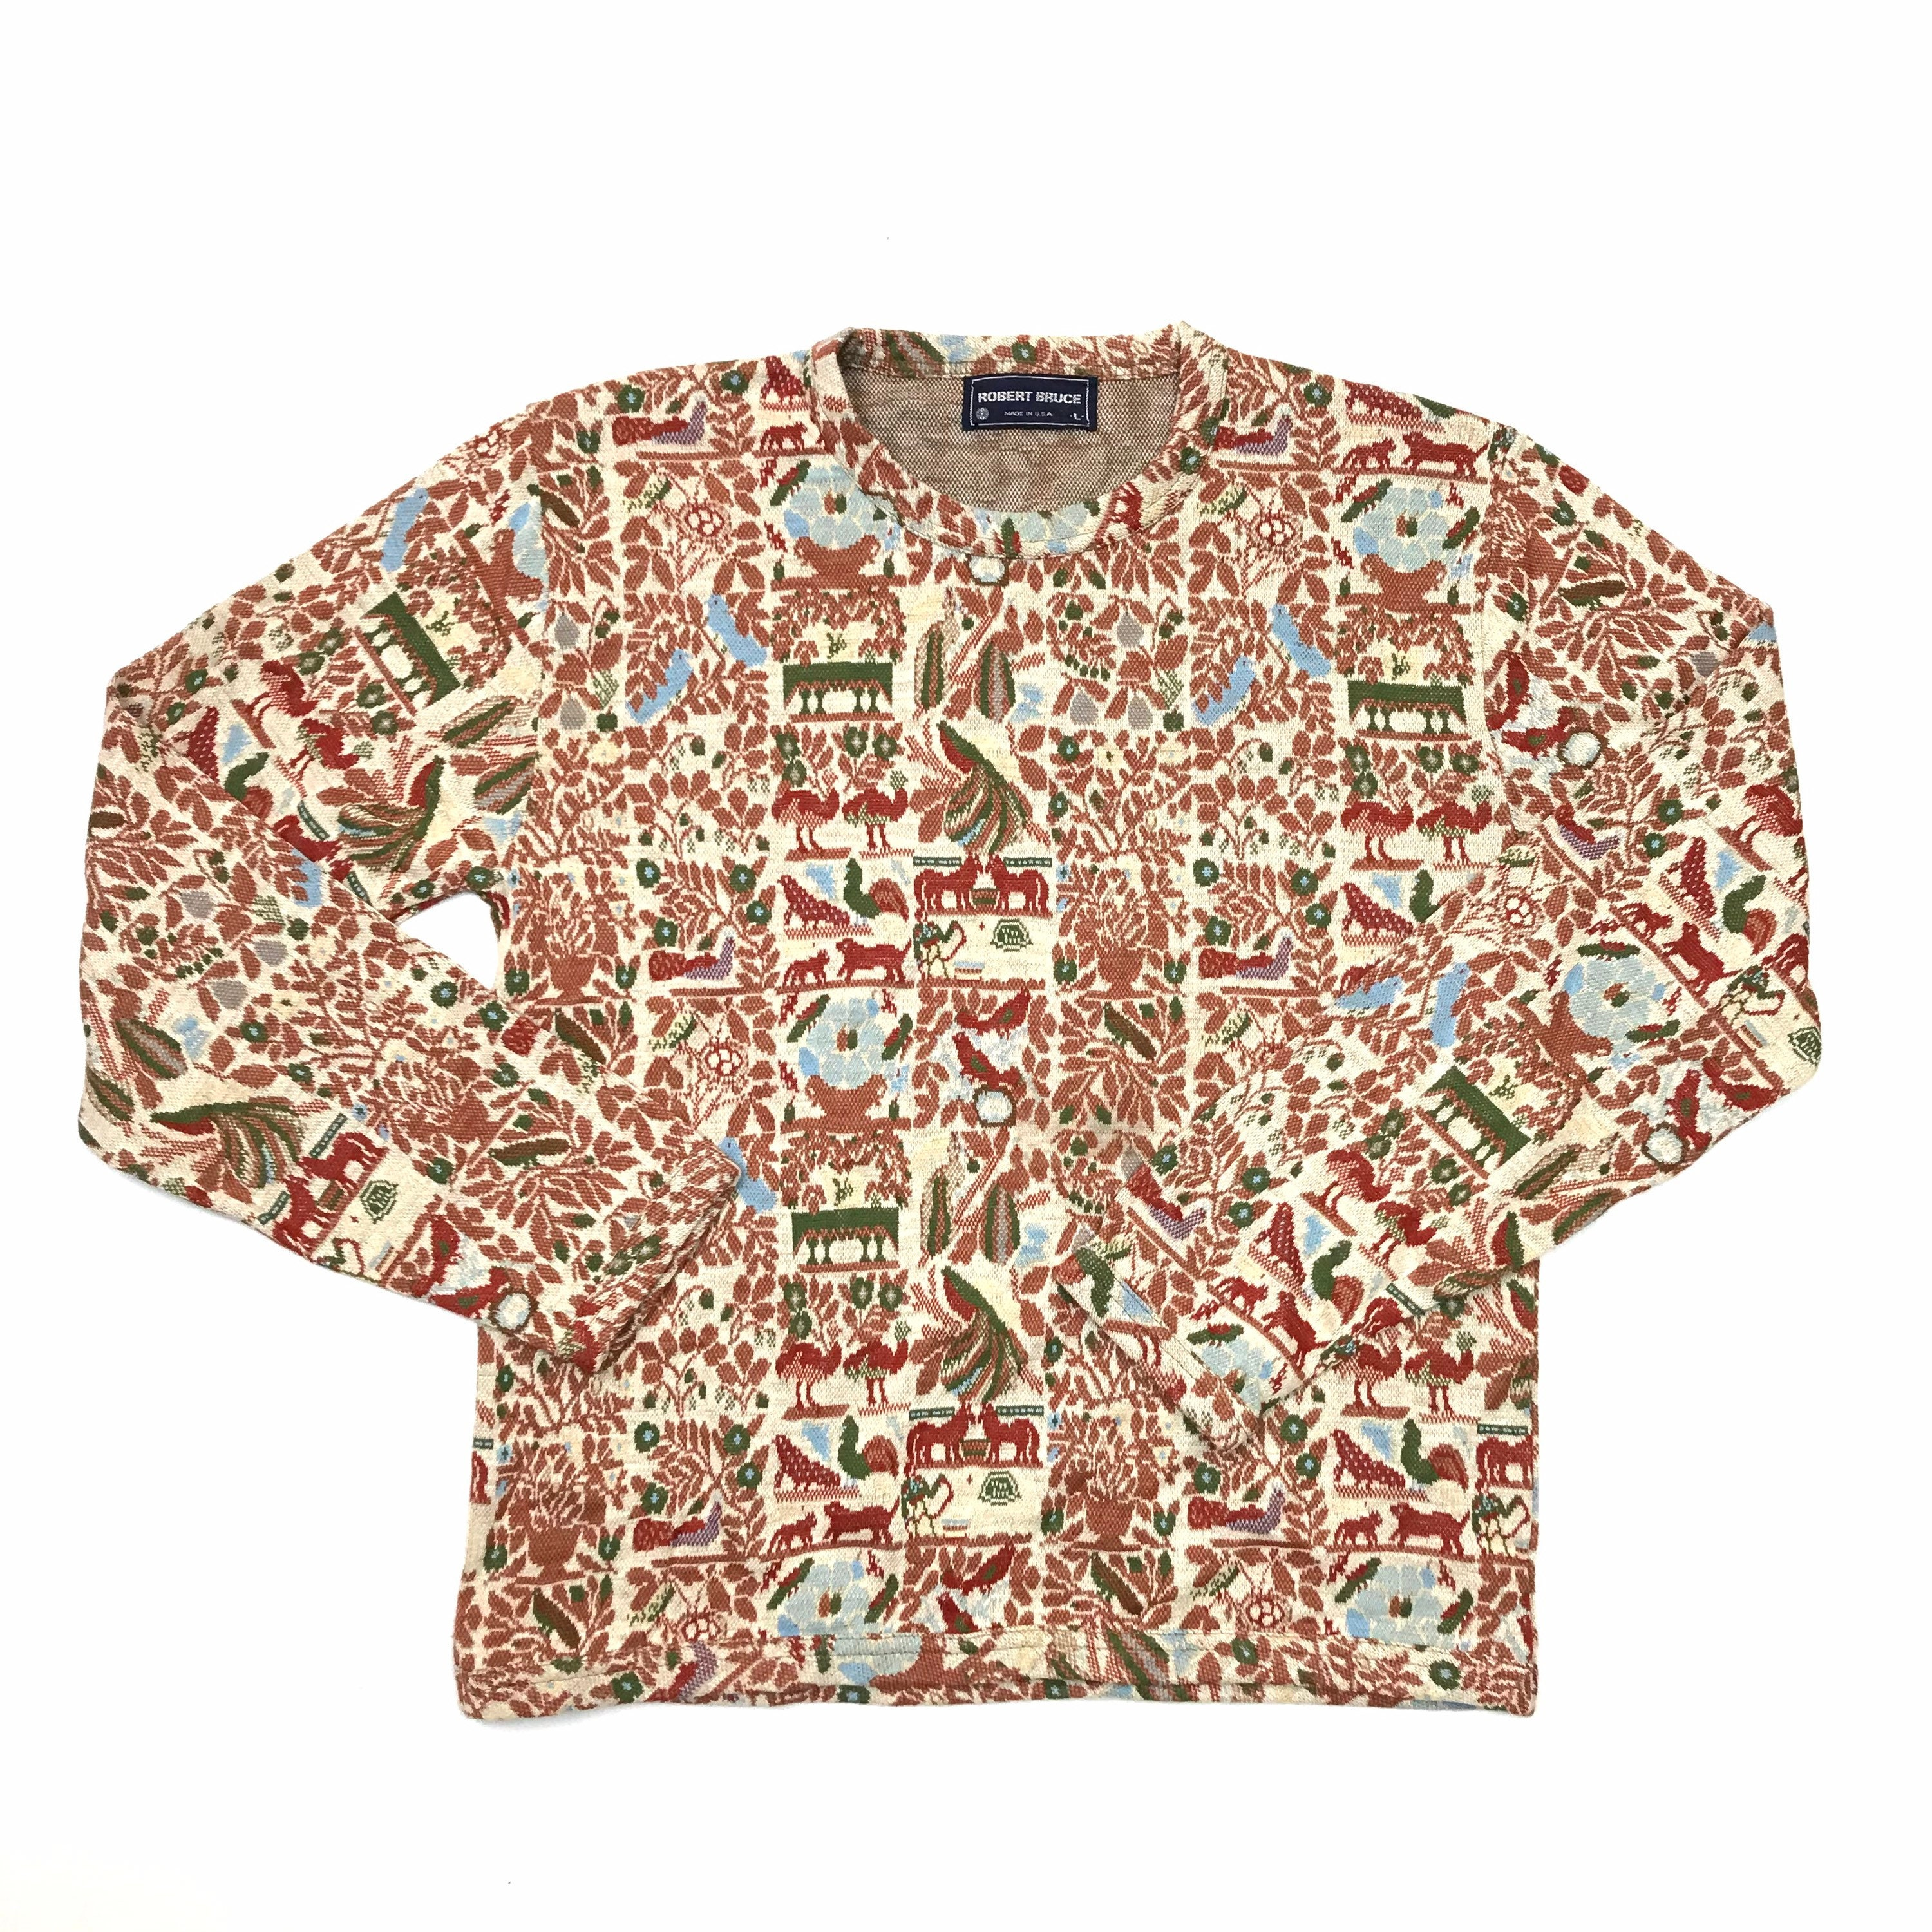 1970s Mens Shirt Styles – Vintage 70s Shirts for Guys 1970s Robert Bruce All Over Farm Large Print Long Sleeve Knit Shirt Sweater $9.99 AT vintagedancer.com